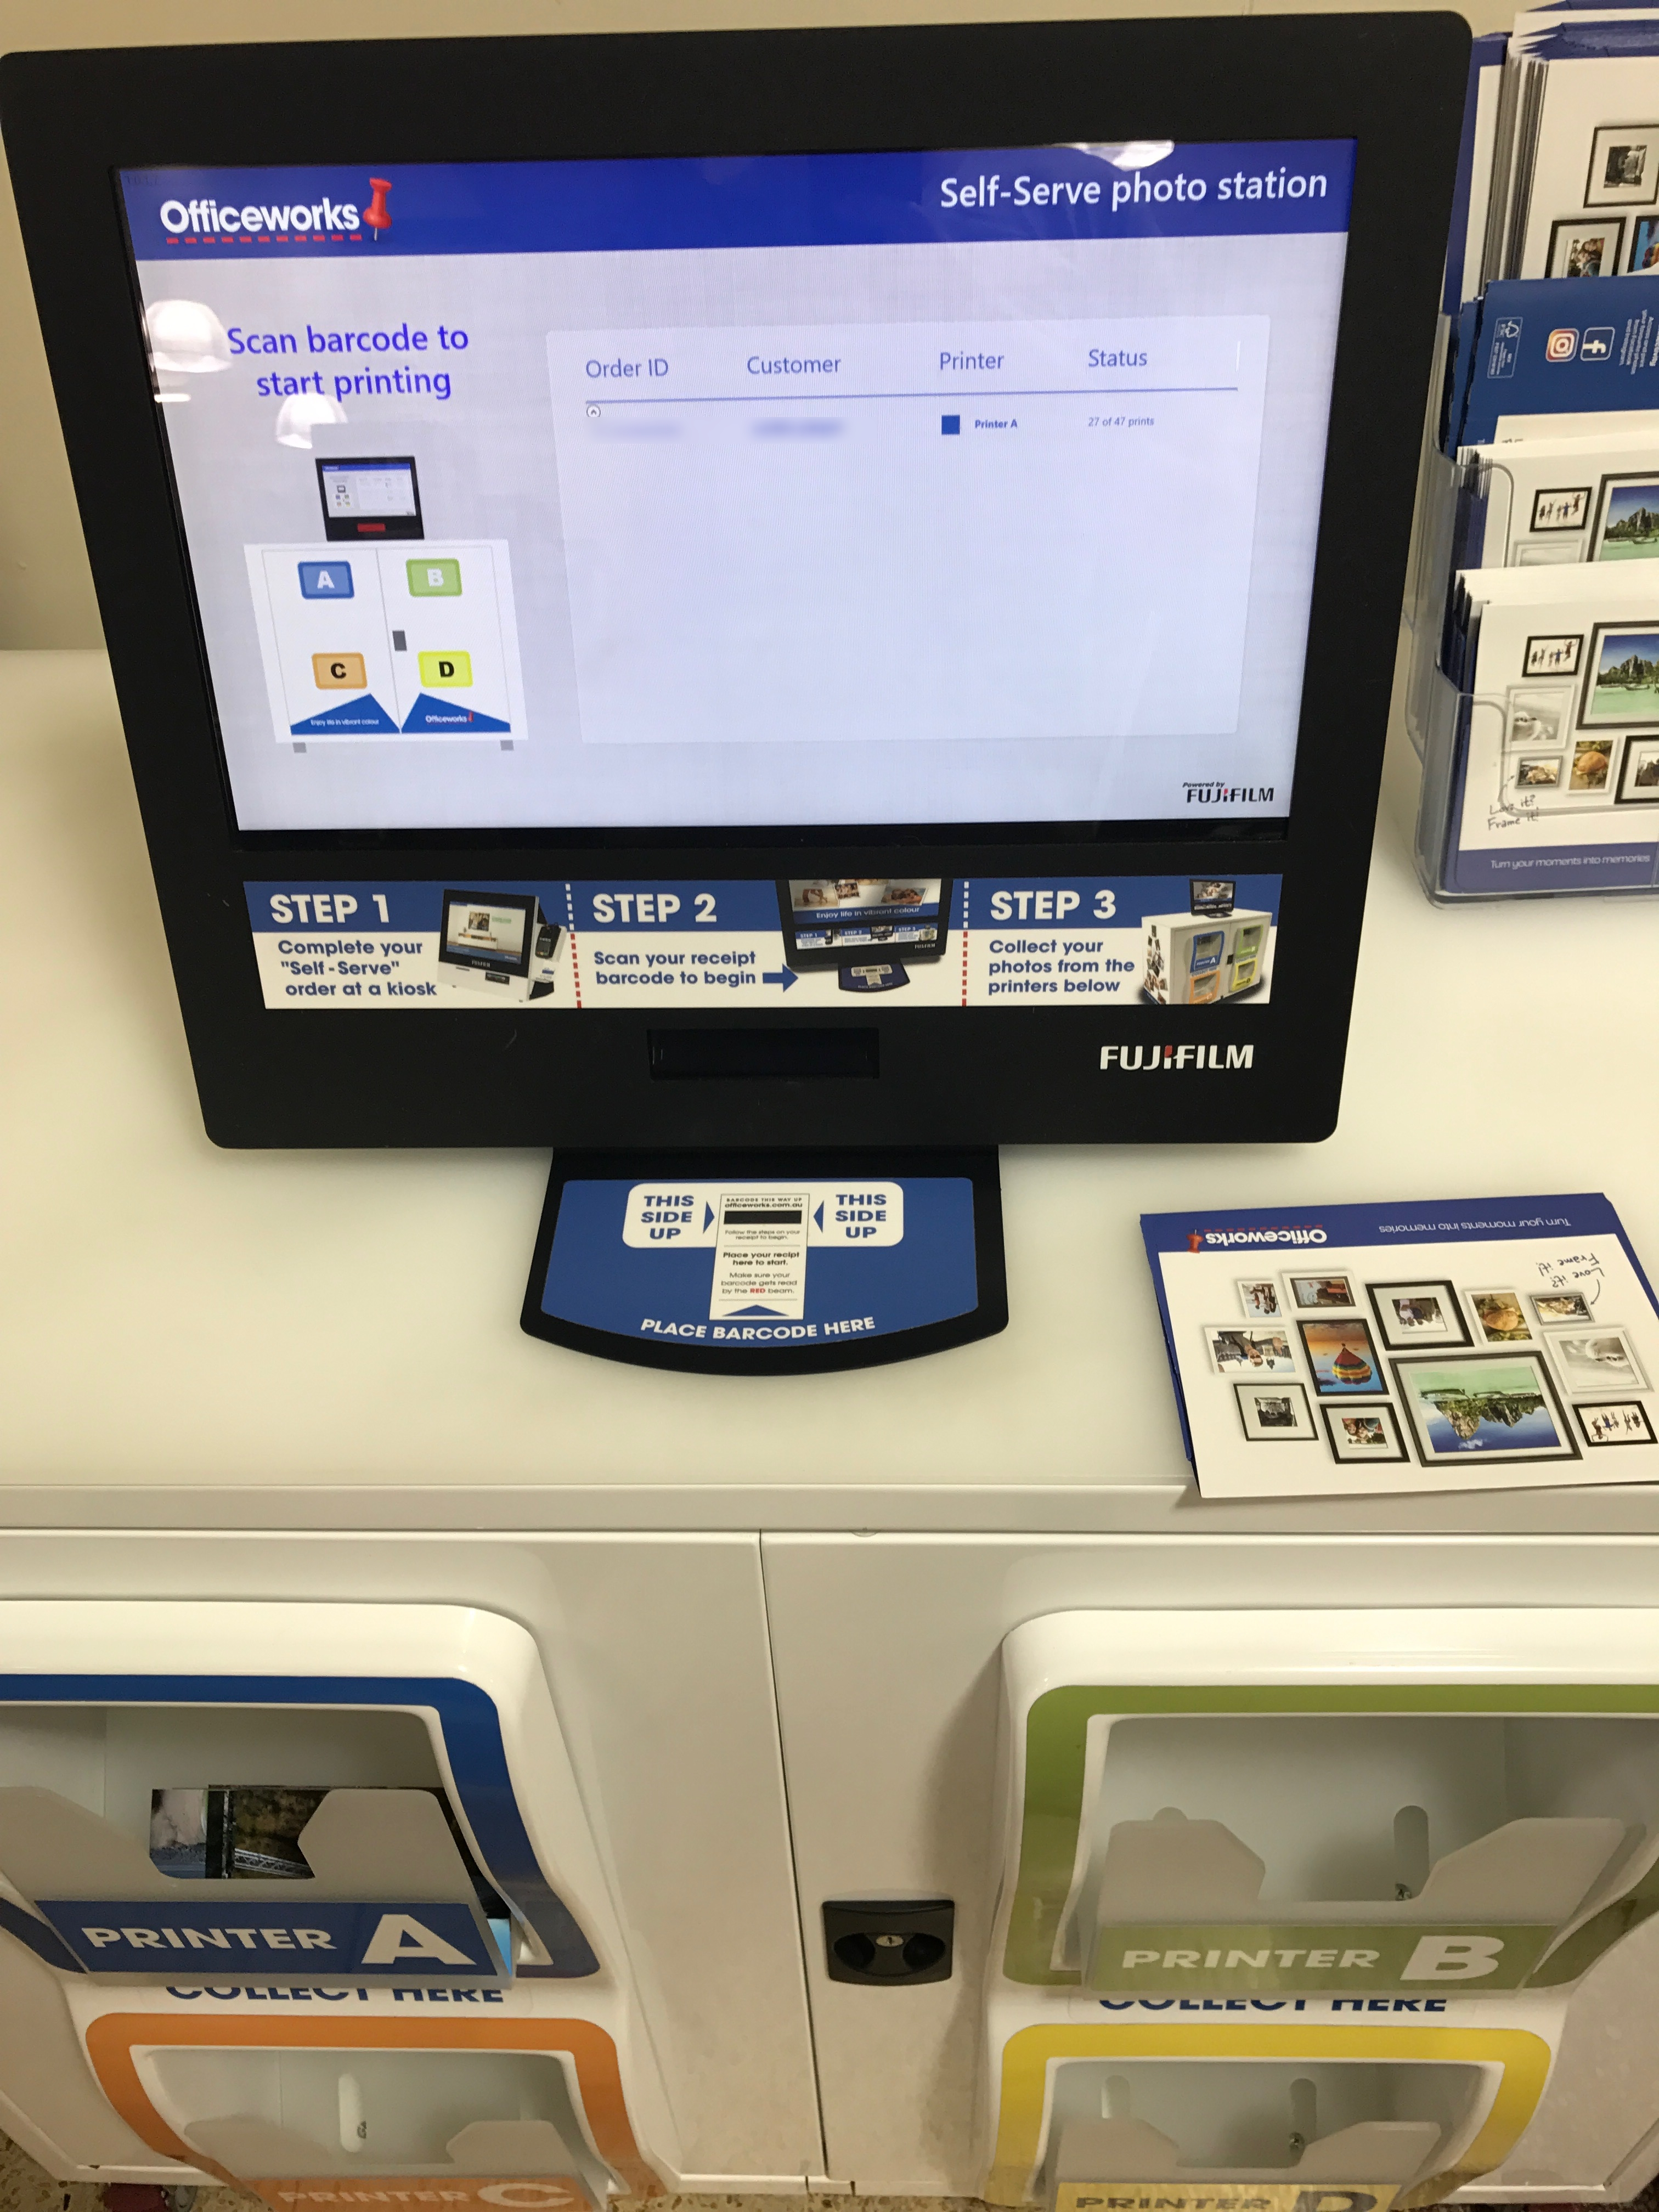 The Officeworks self serve photo printing experience – corbpie